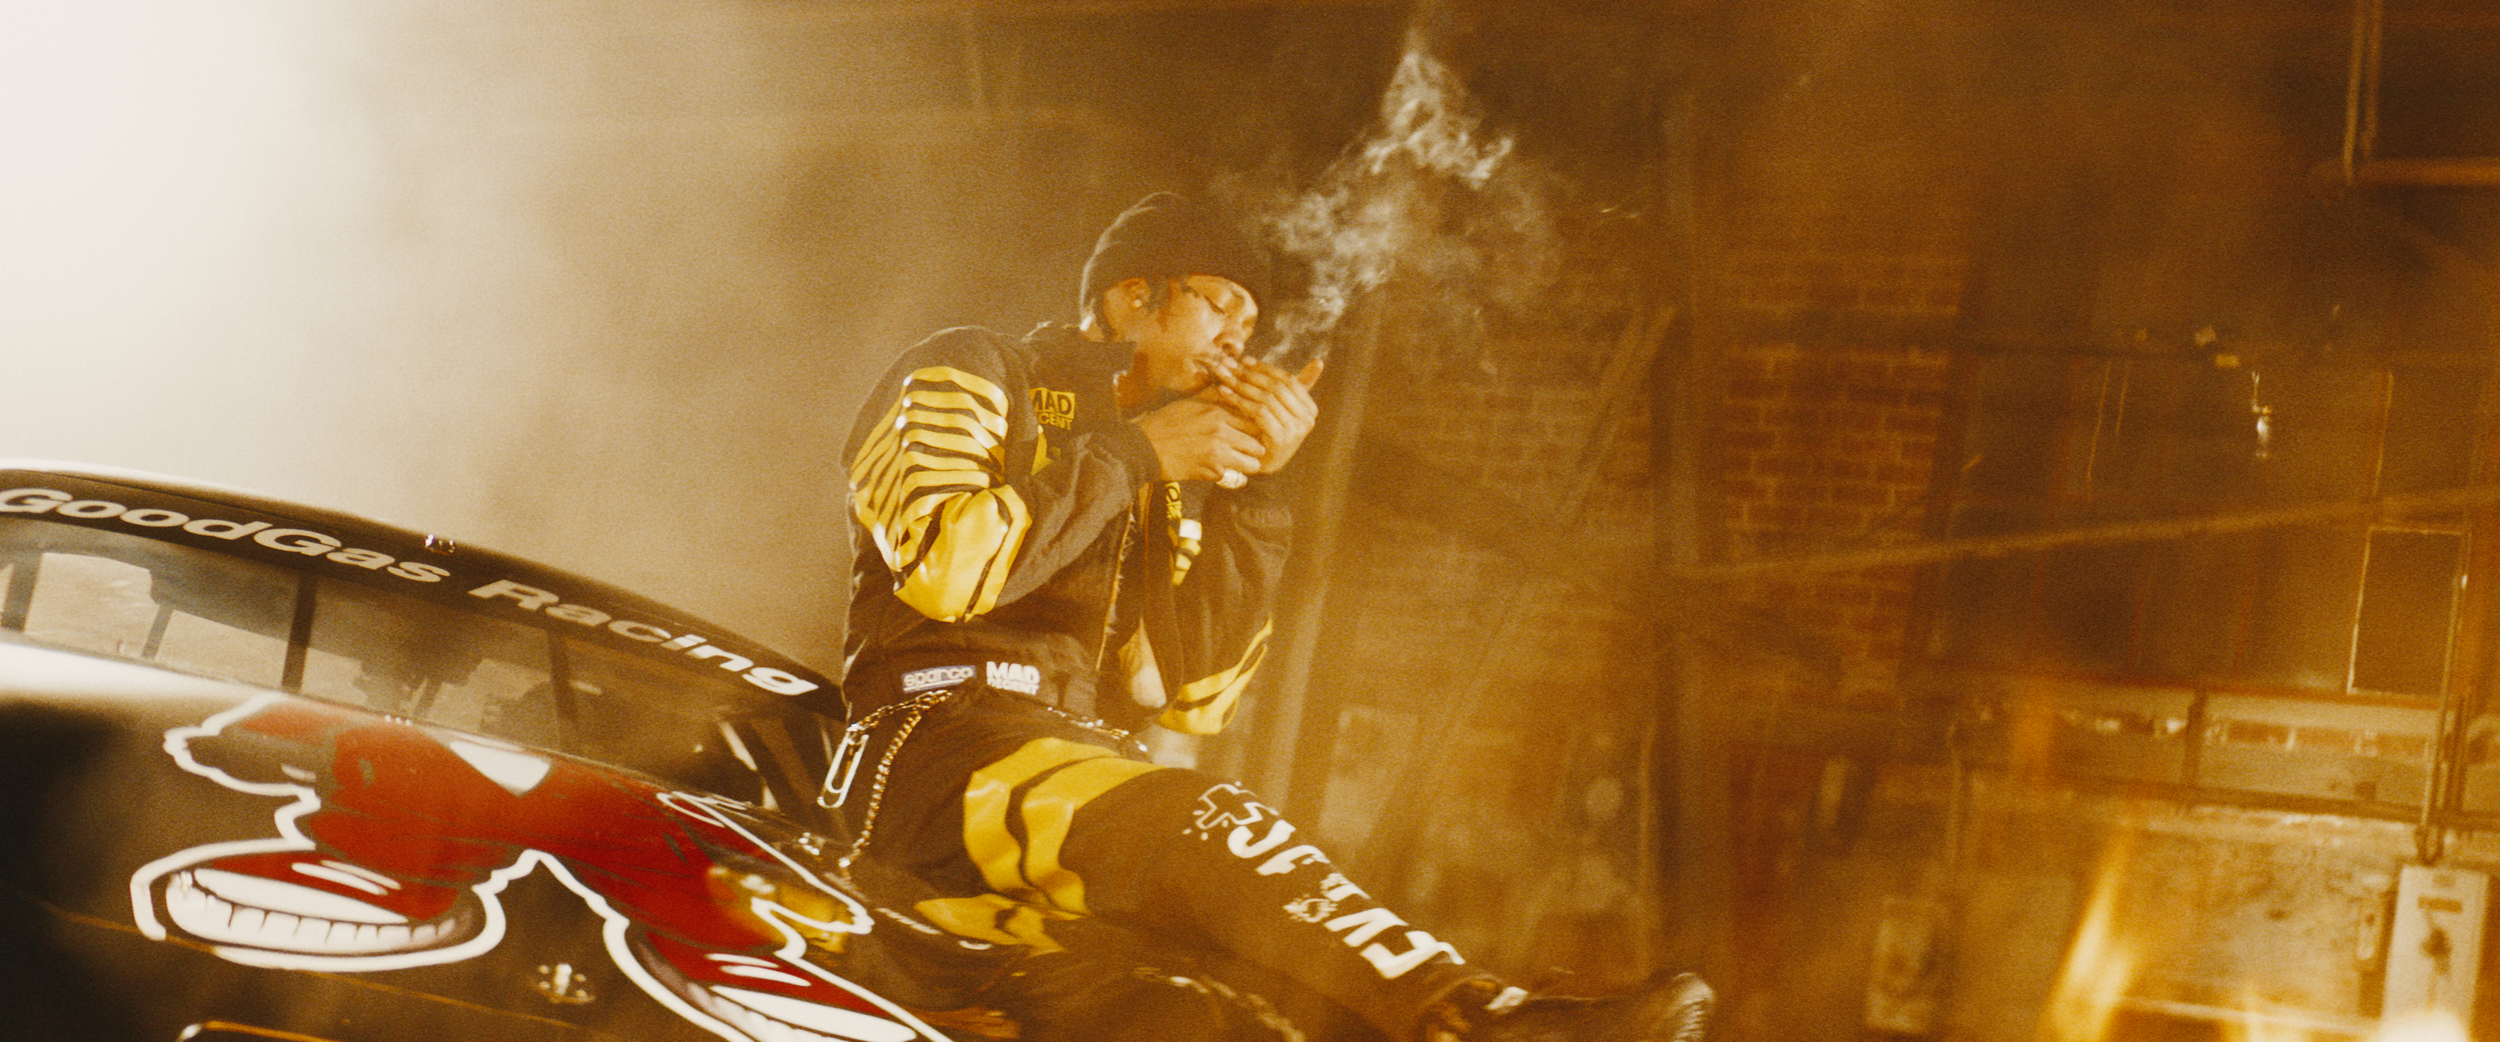 Good Gas by MadinTYO, UnoTheActivist, FKi 1st - Music Video - Cinematography by Philips Shum